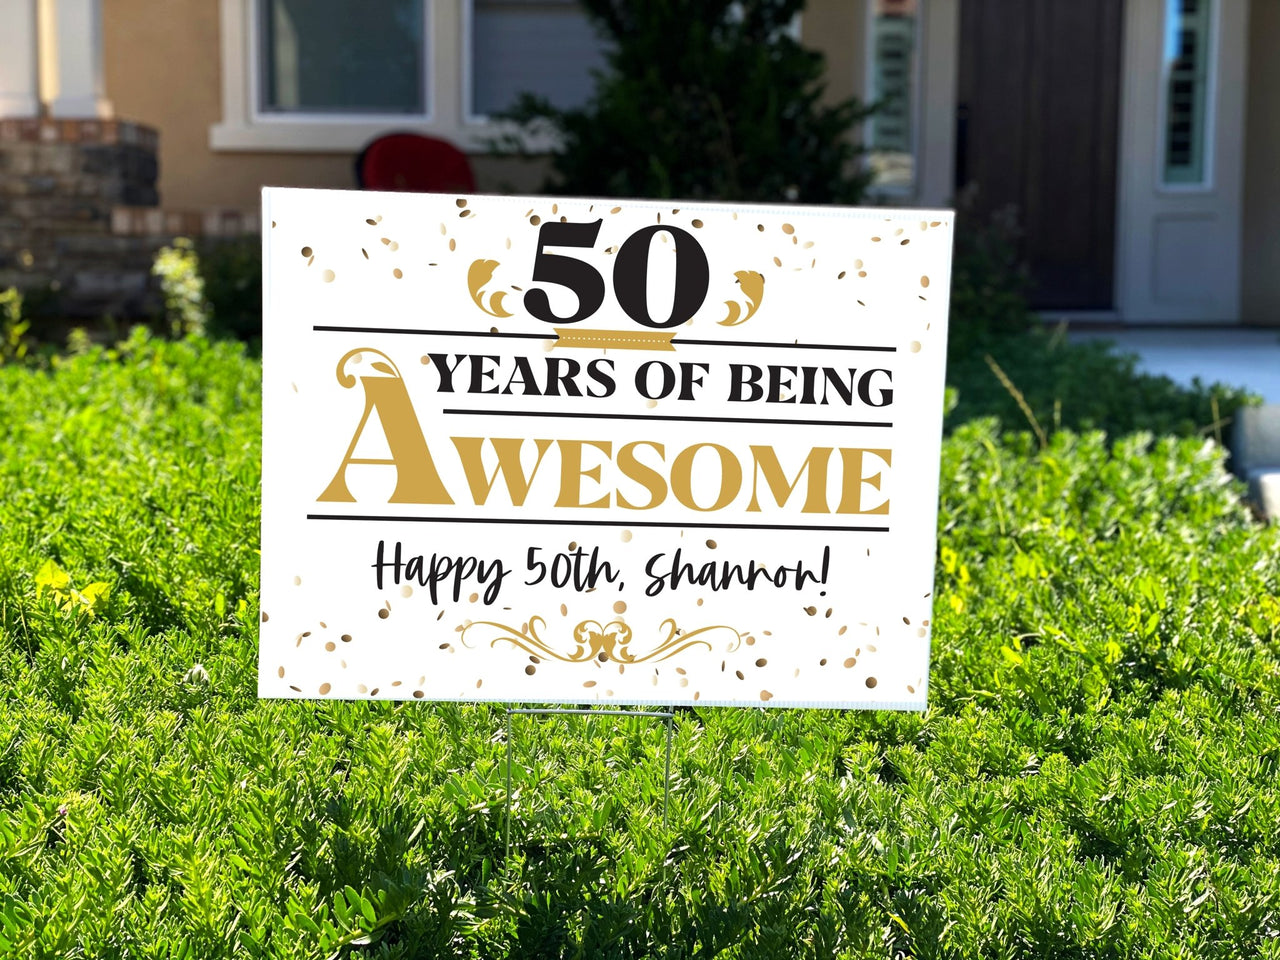 50 Years Of Awesome 50th Birthday Yard Sign - Rich Design Co